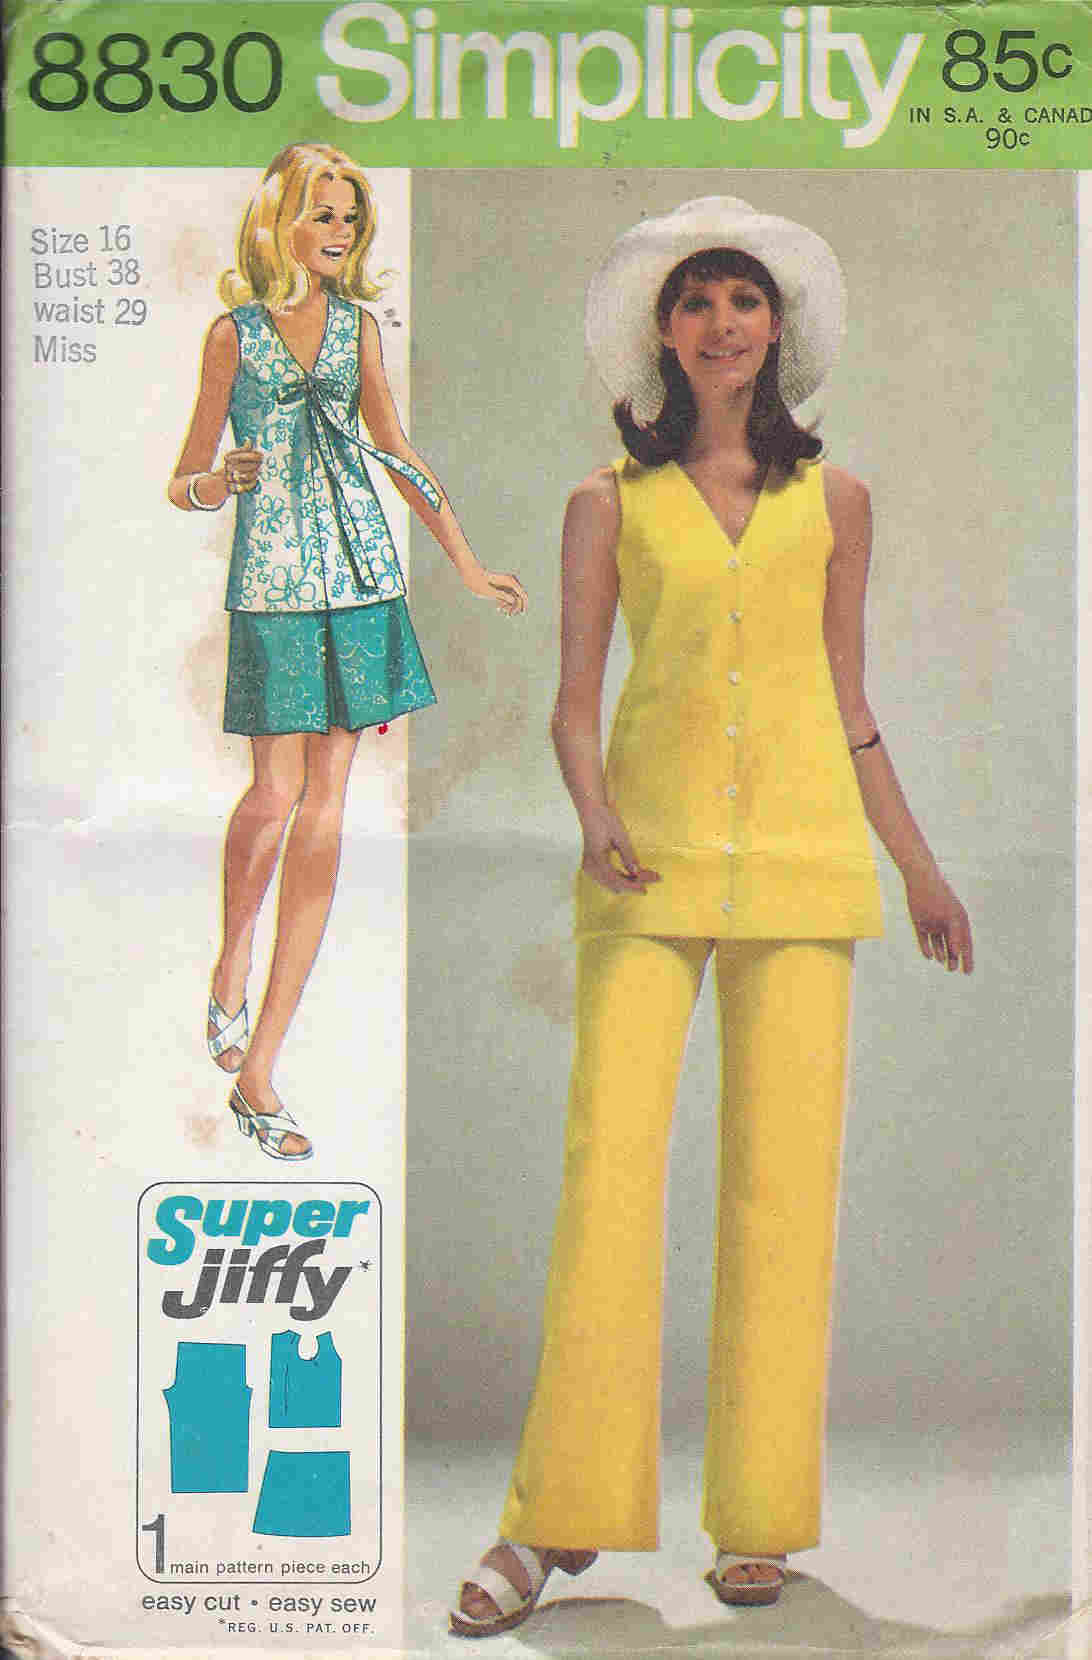 jiffy skirt blouse pants sewing pattern